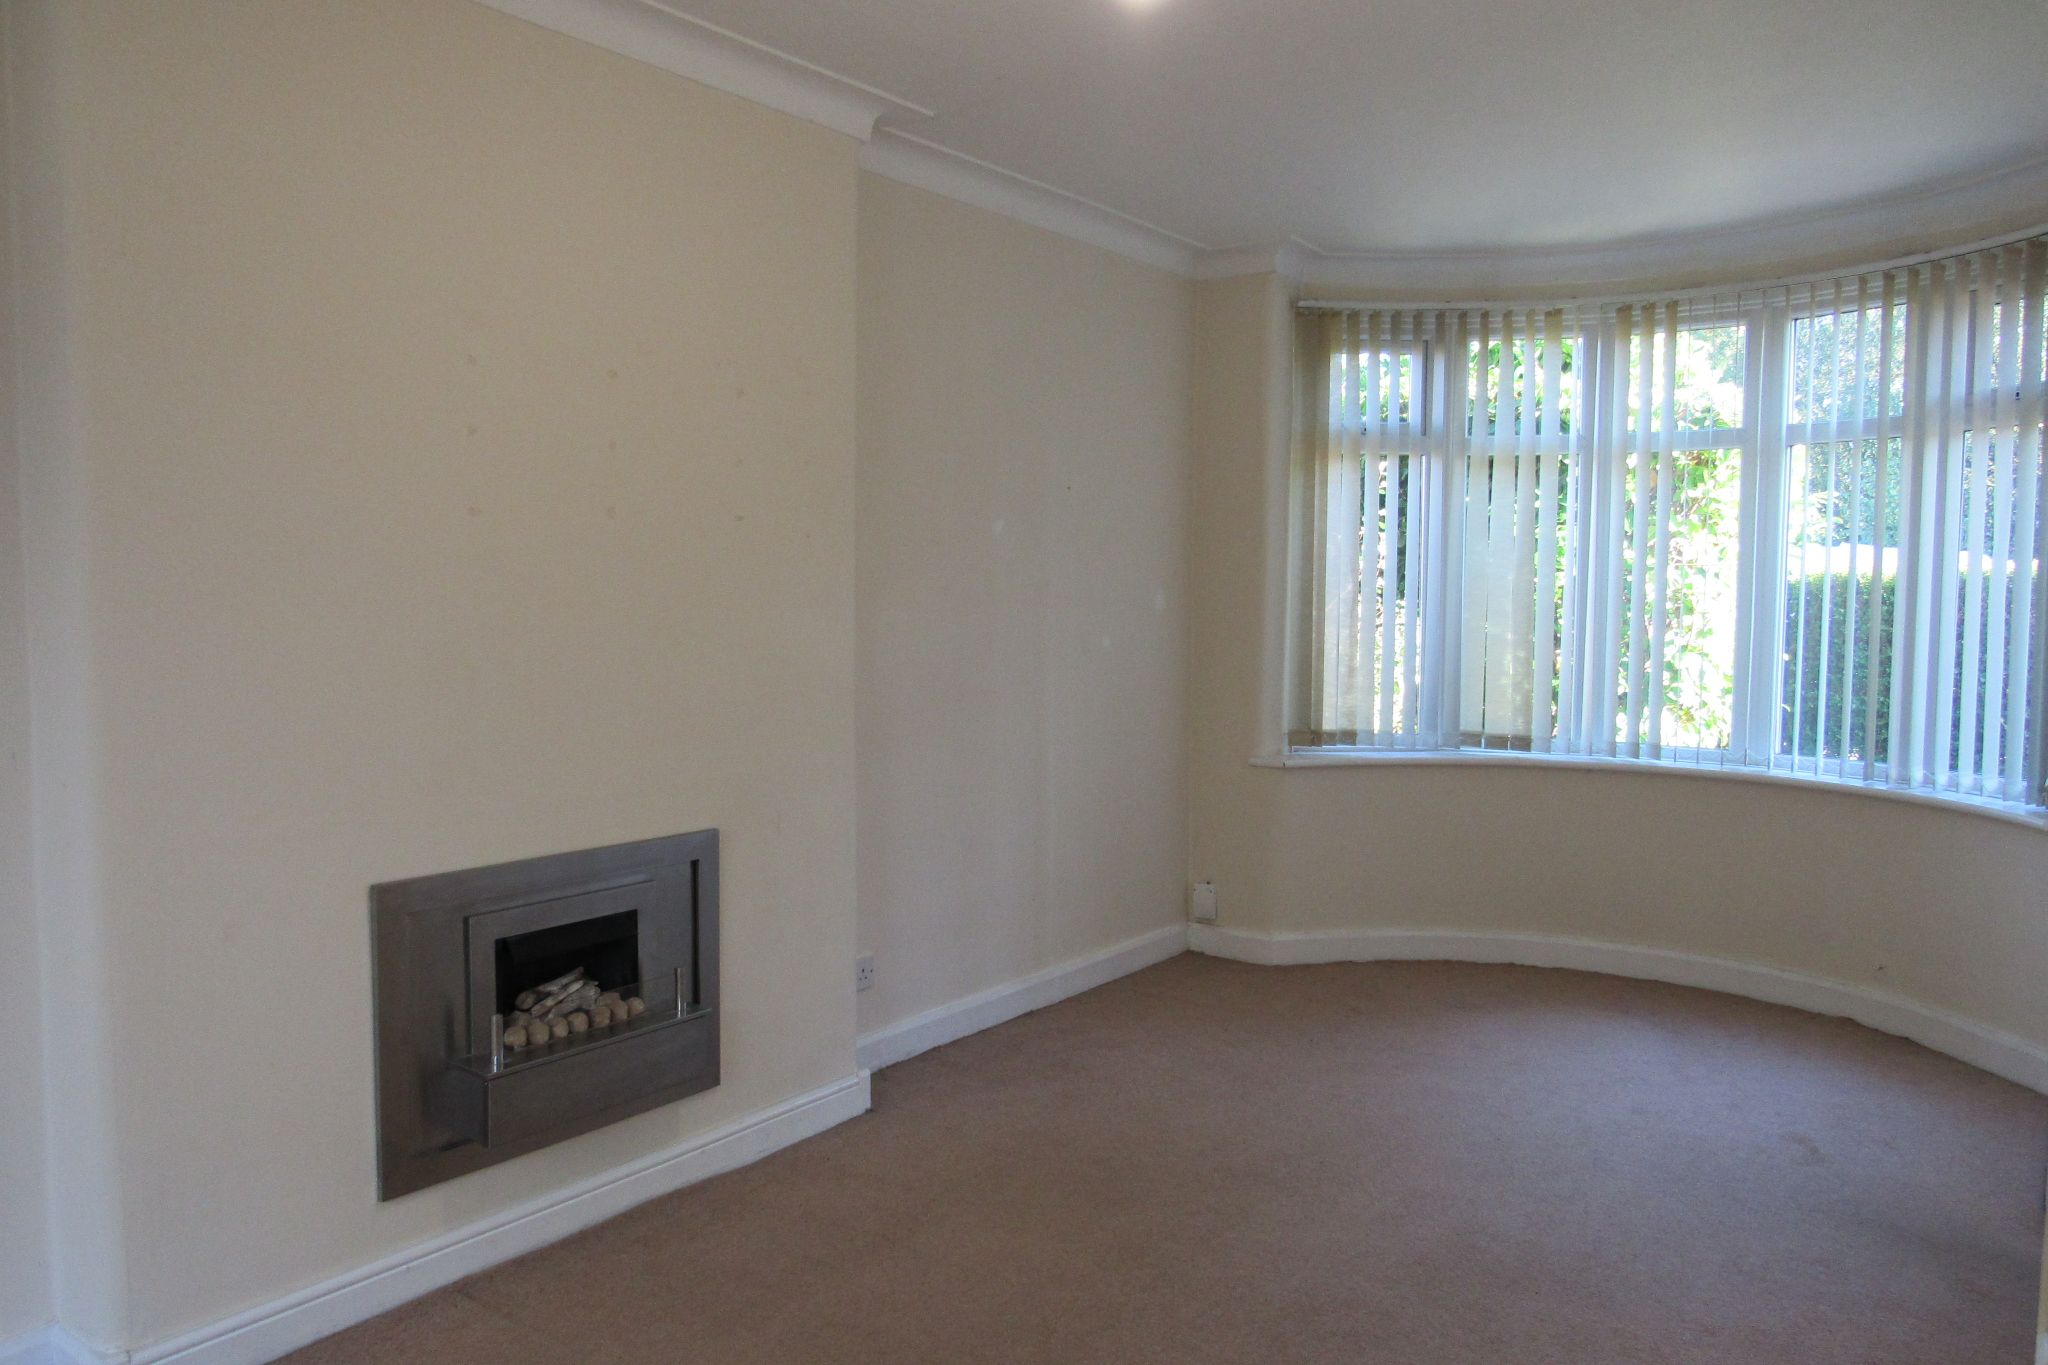 3 bedroom semi-detached house For Sale in Manchester - Photograph 27.